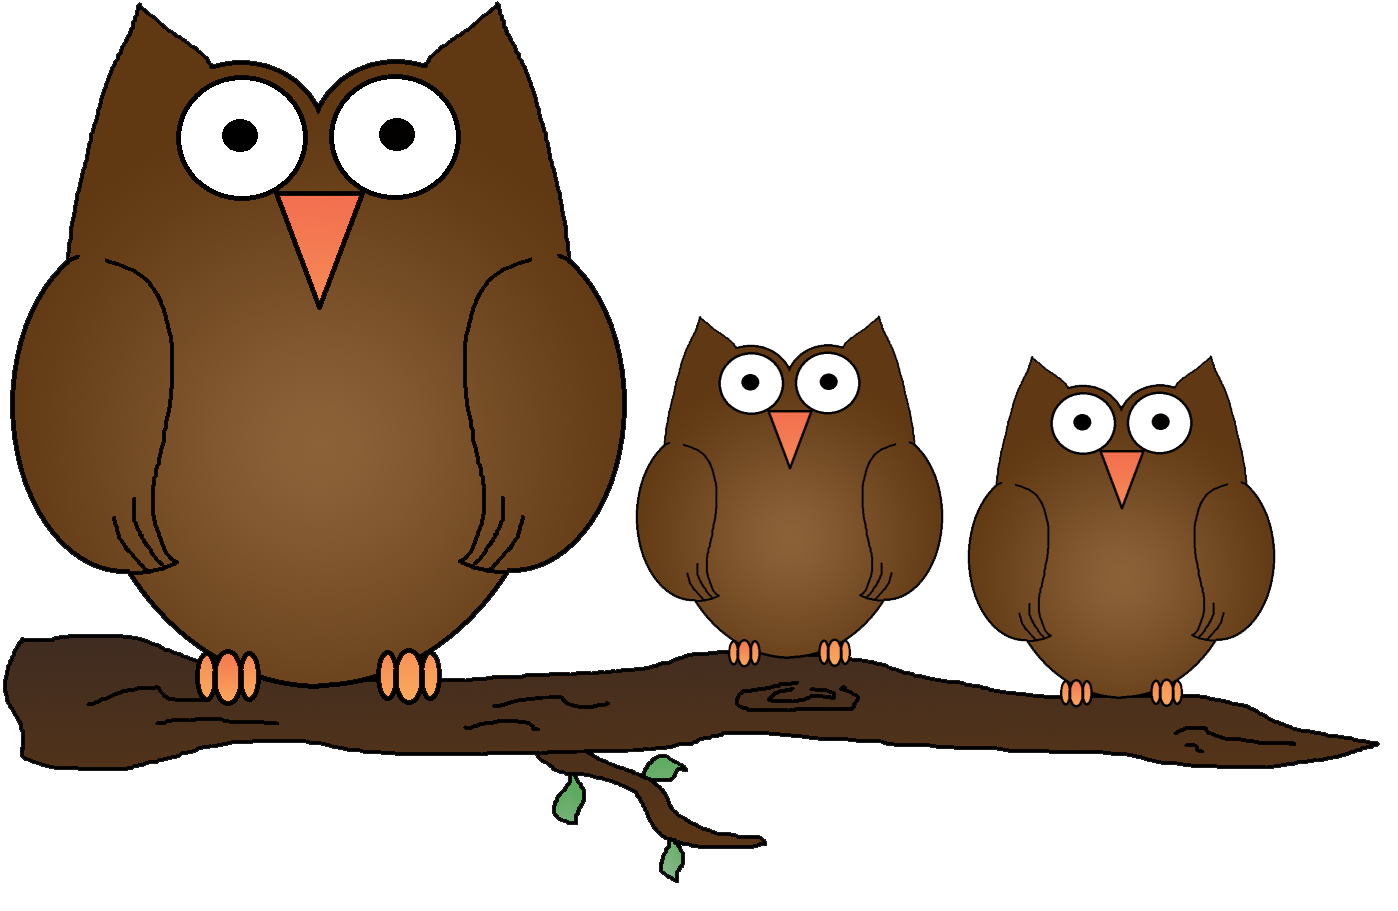 Real owl clipart svg library stock 17 Best images about Owls on Pinterest | Jokes, How to draw and ... svg library stock